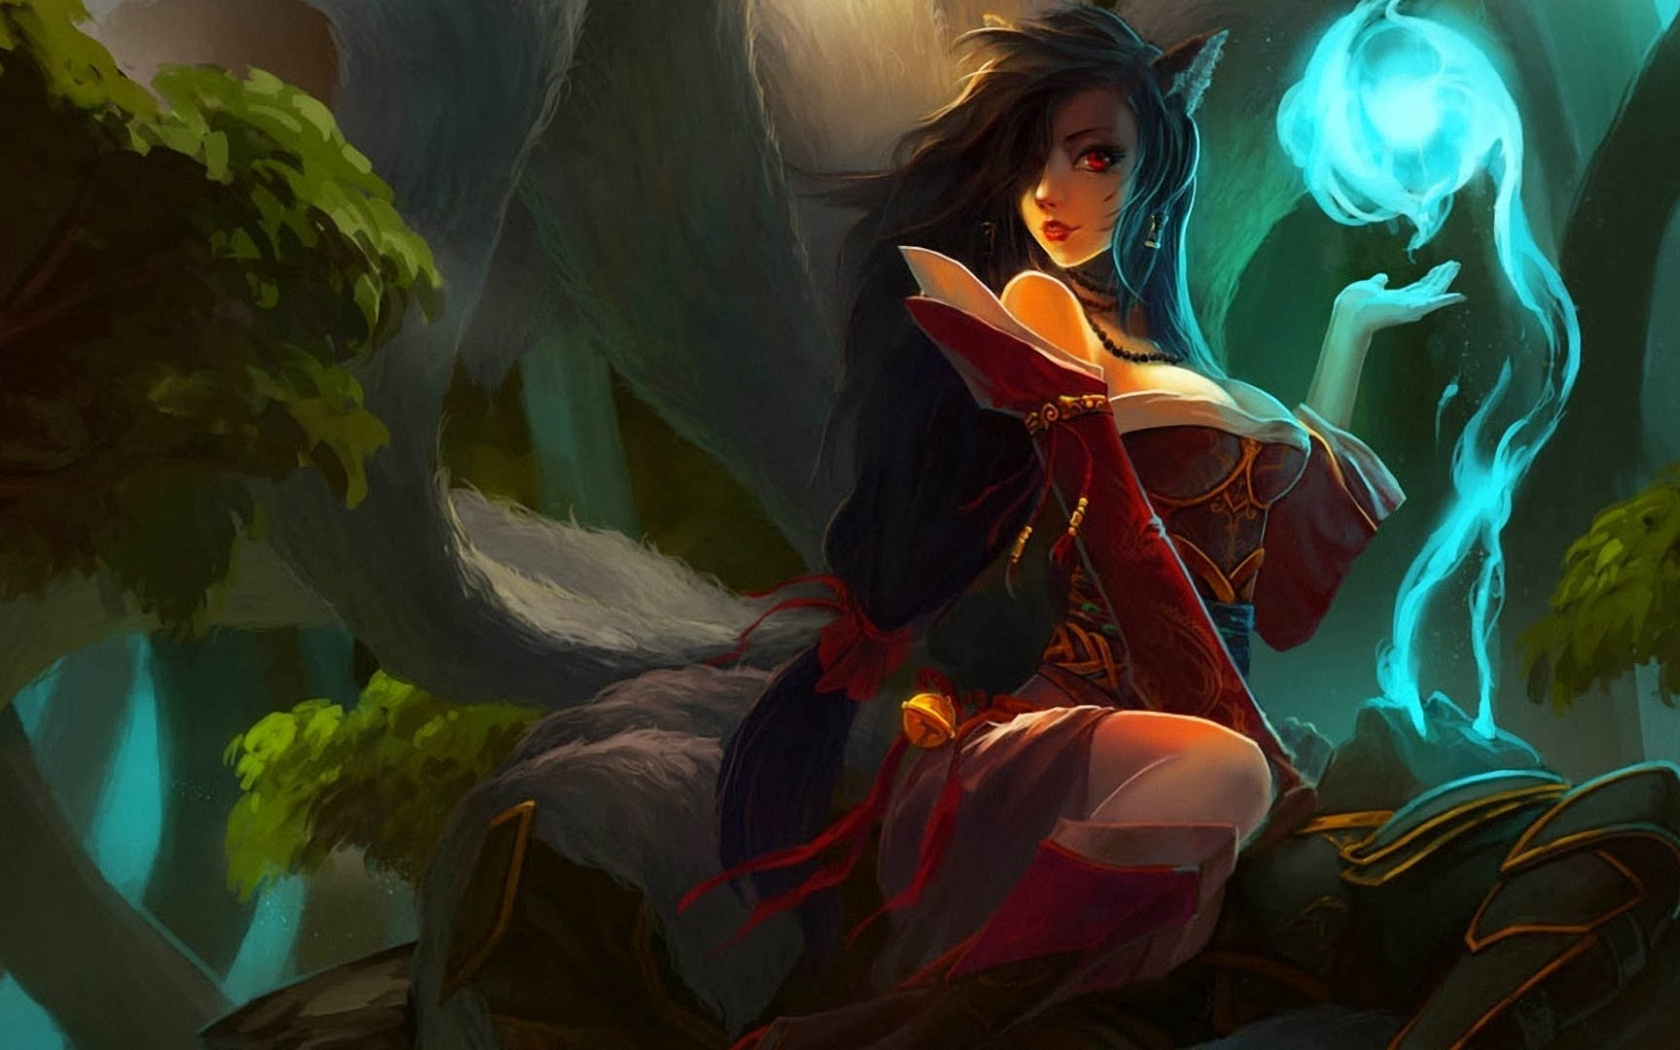 Free Download Ahri League Of Legends Hd Wallpaper Background Lol